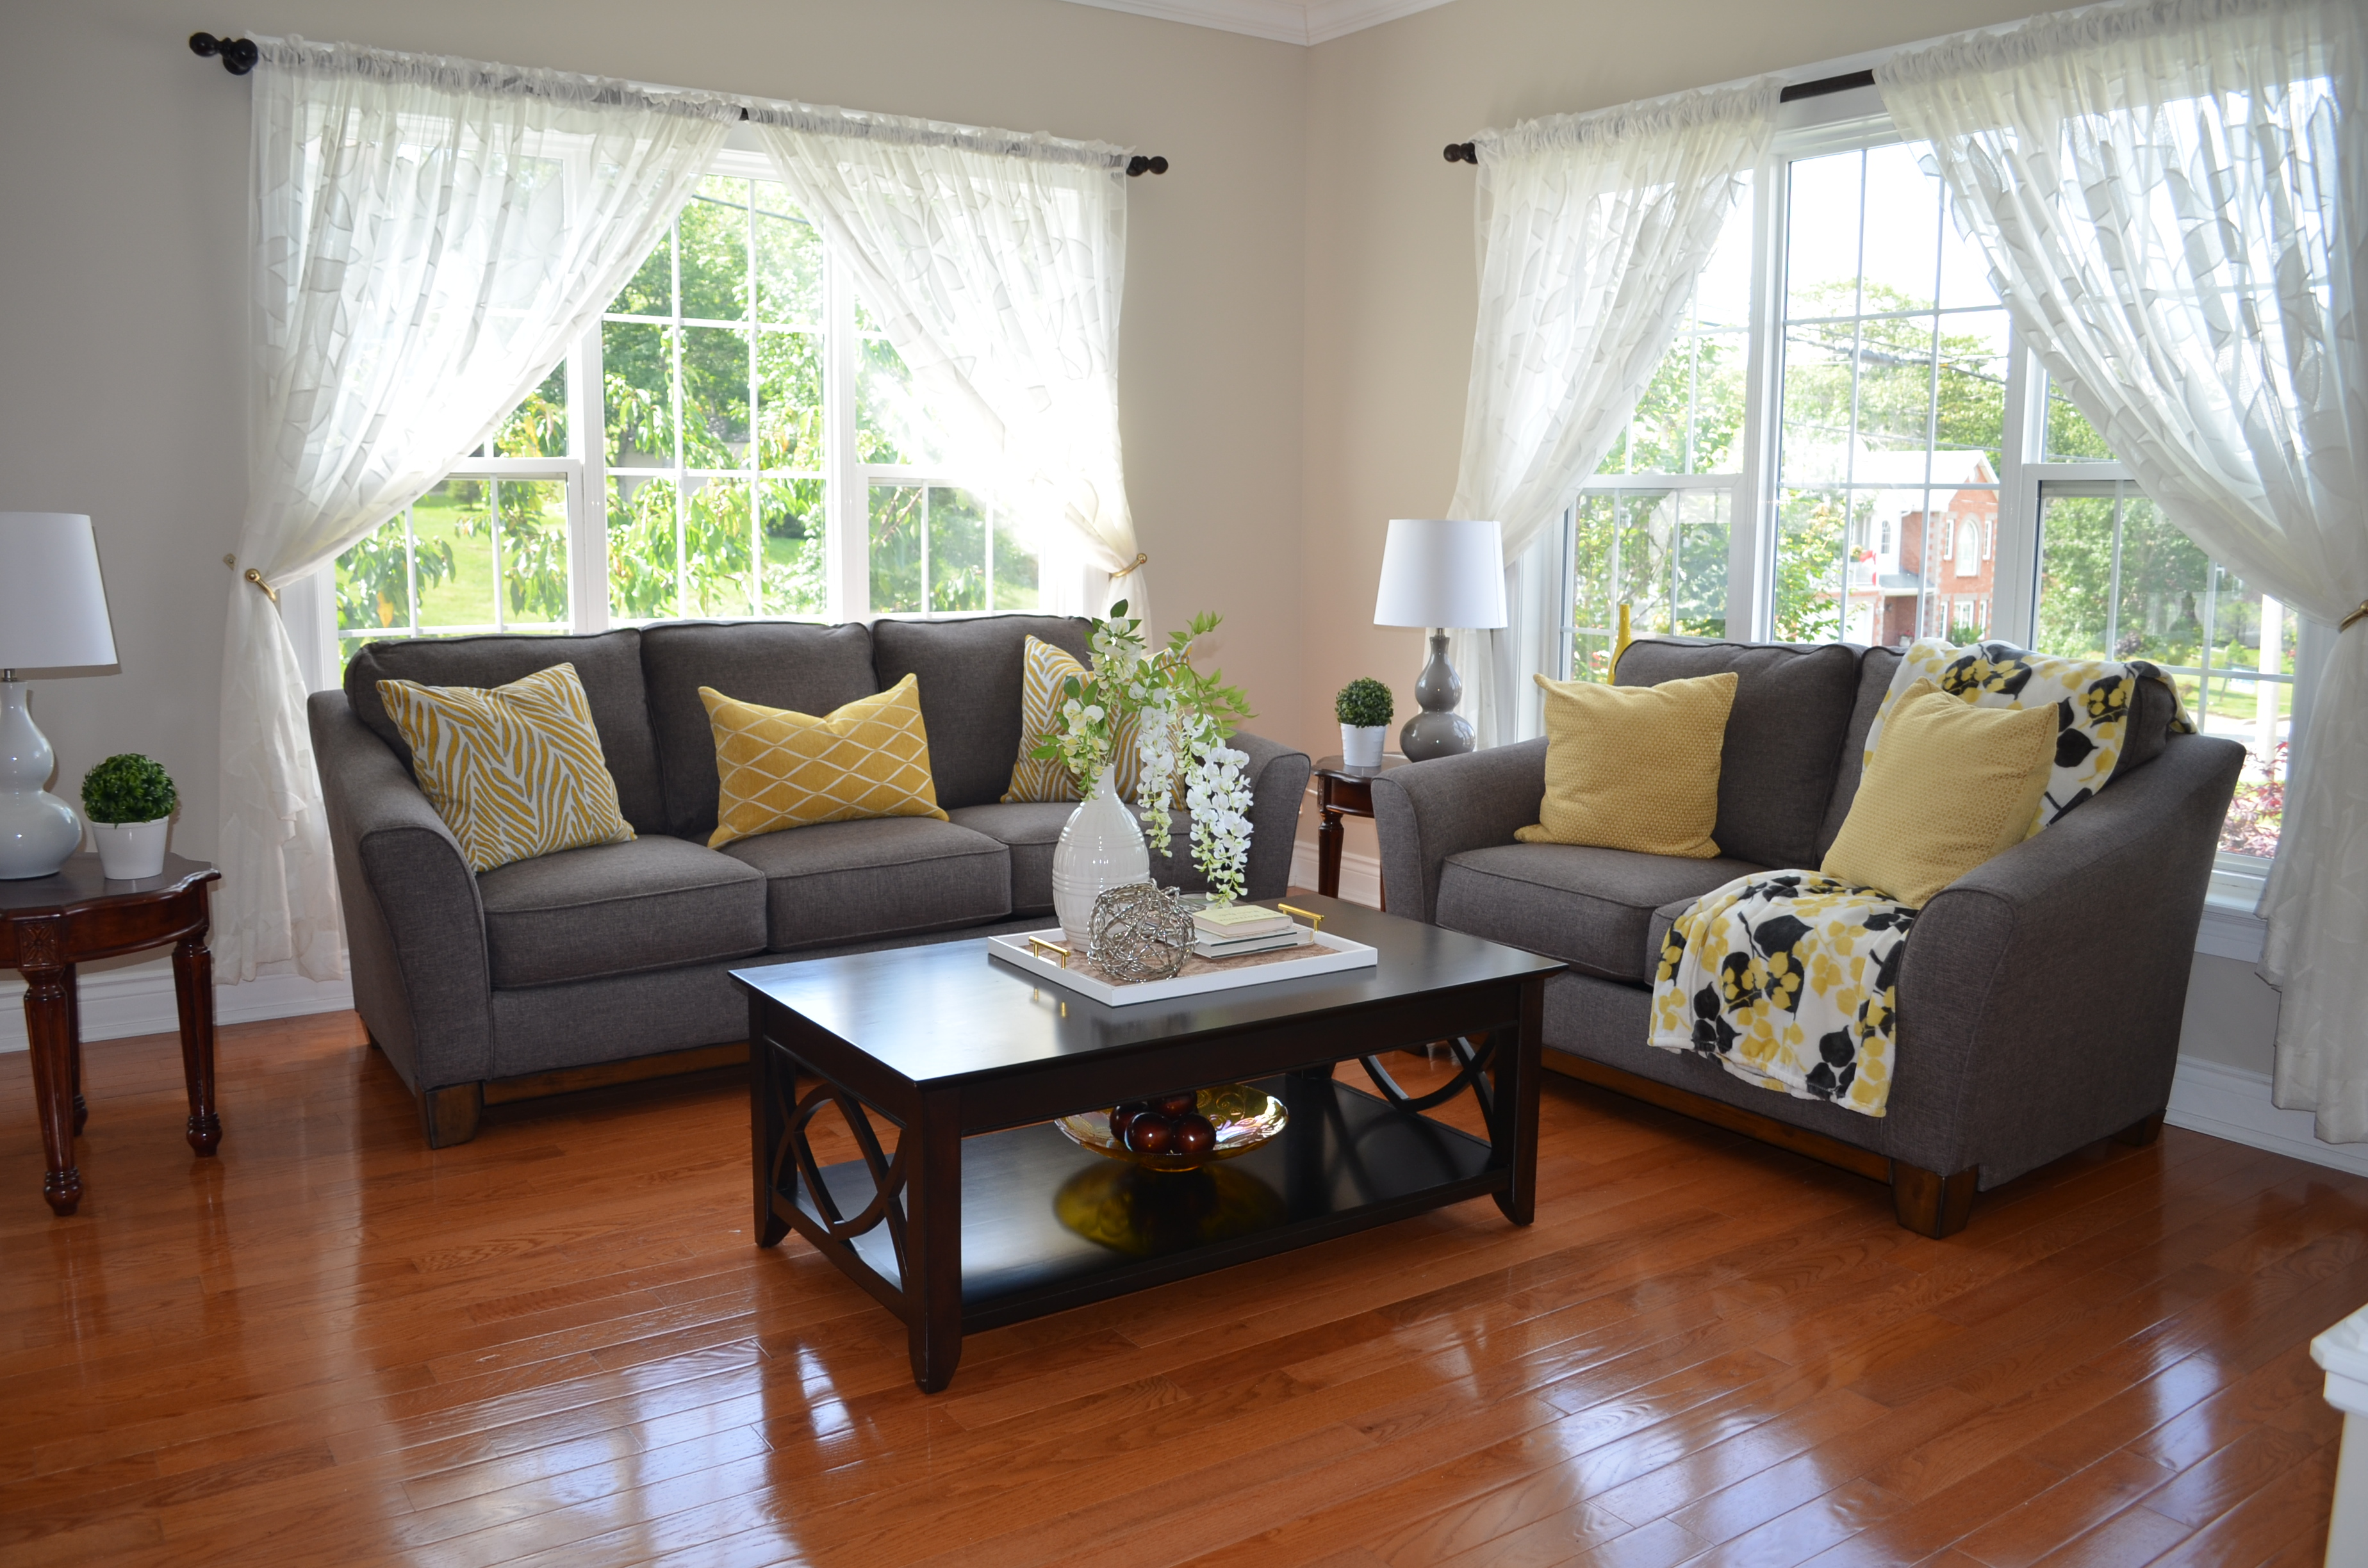 Halifax Home Staging Real Estate Home Design Revive Home Staging Pam MacKinnon Bedford 4